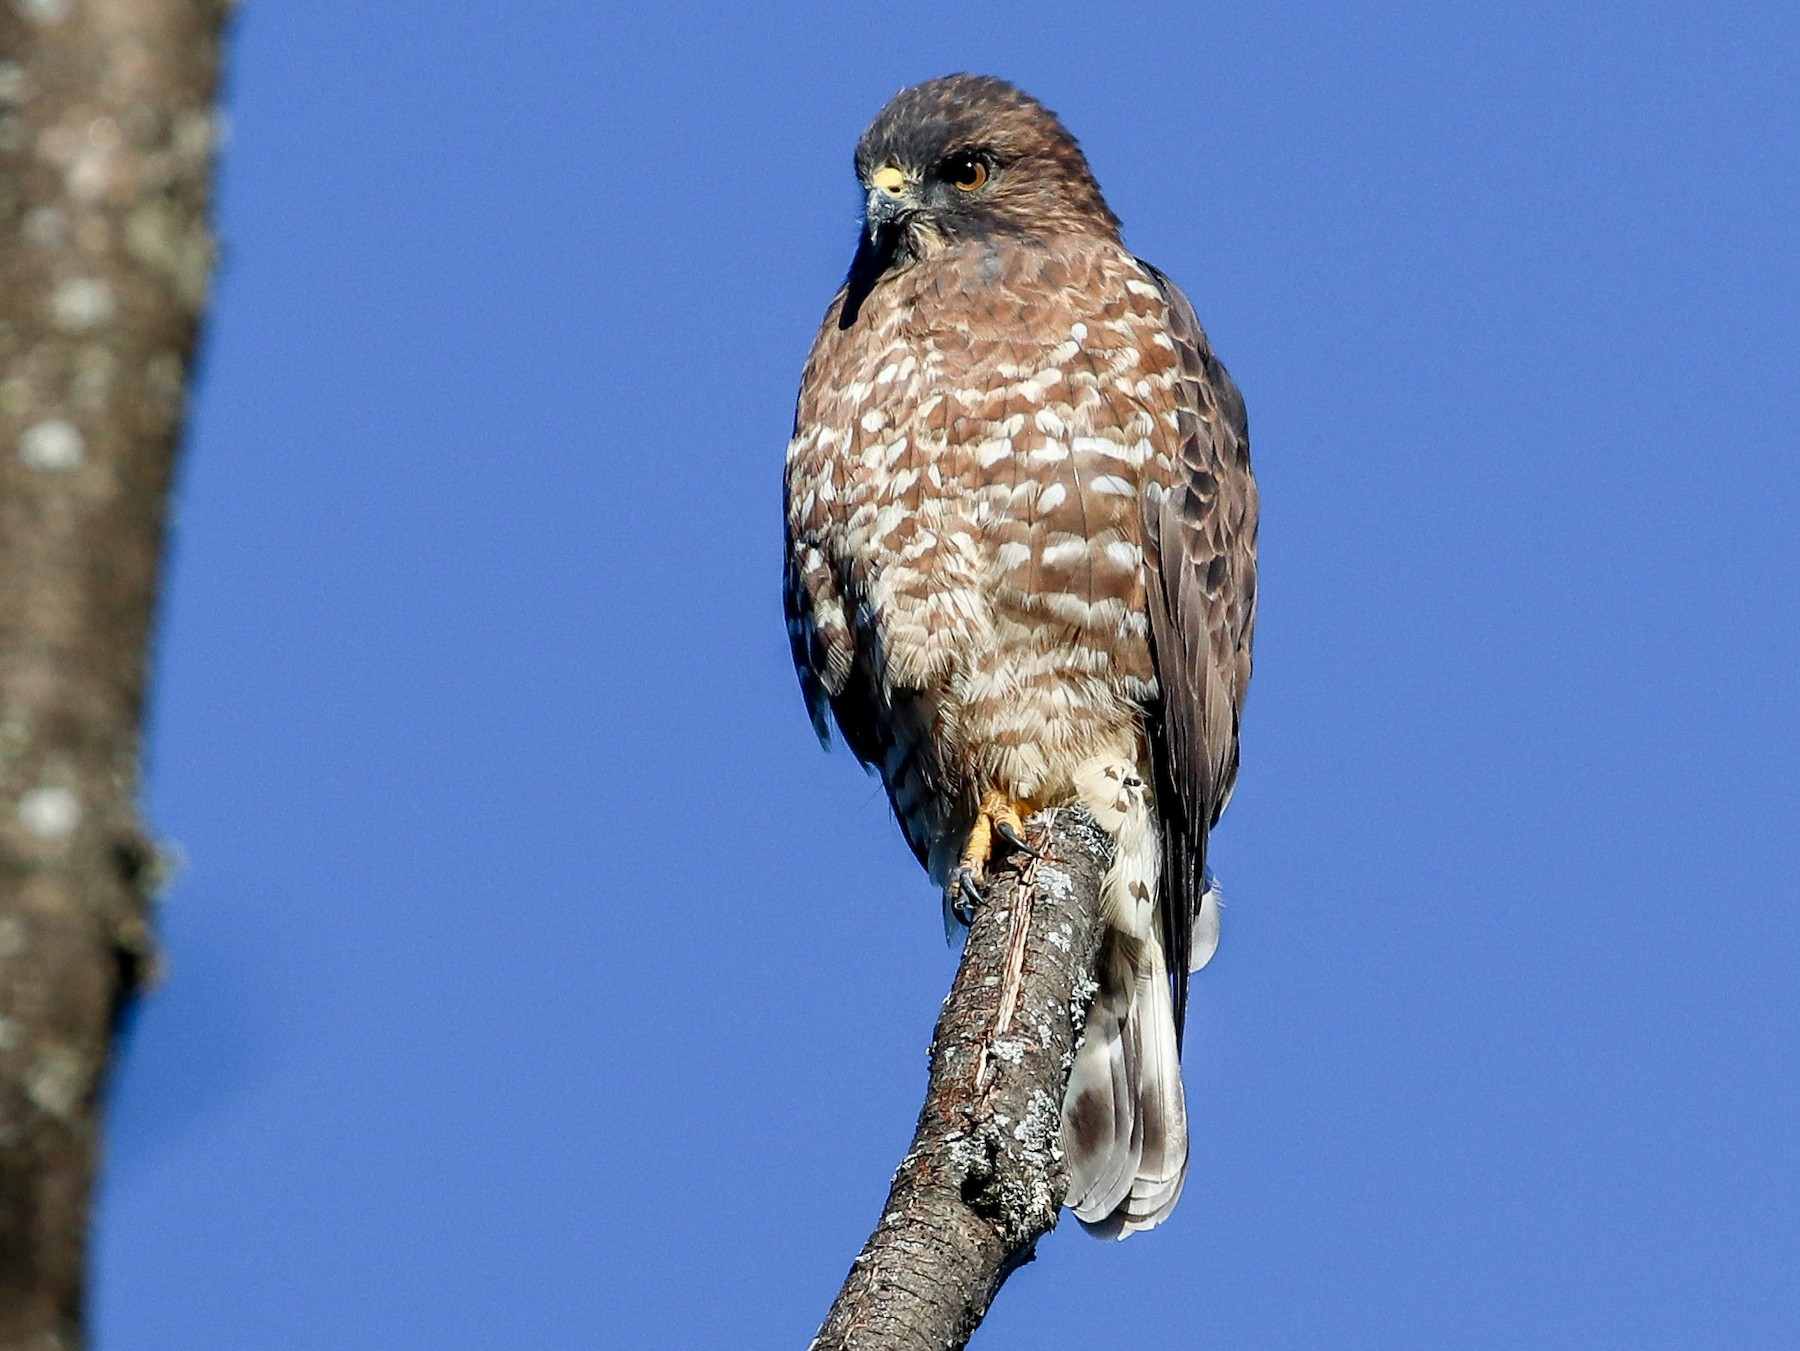 Broad-winged Hawk - Martina Nordstrand